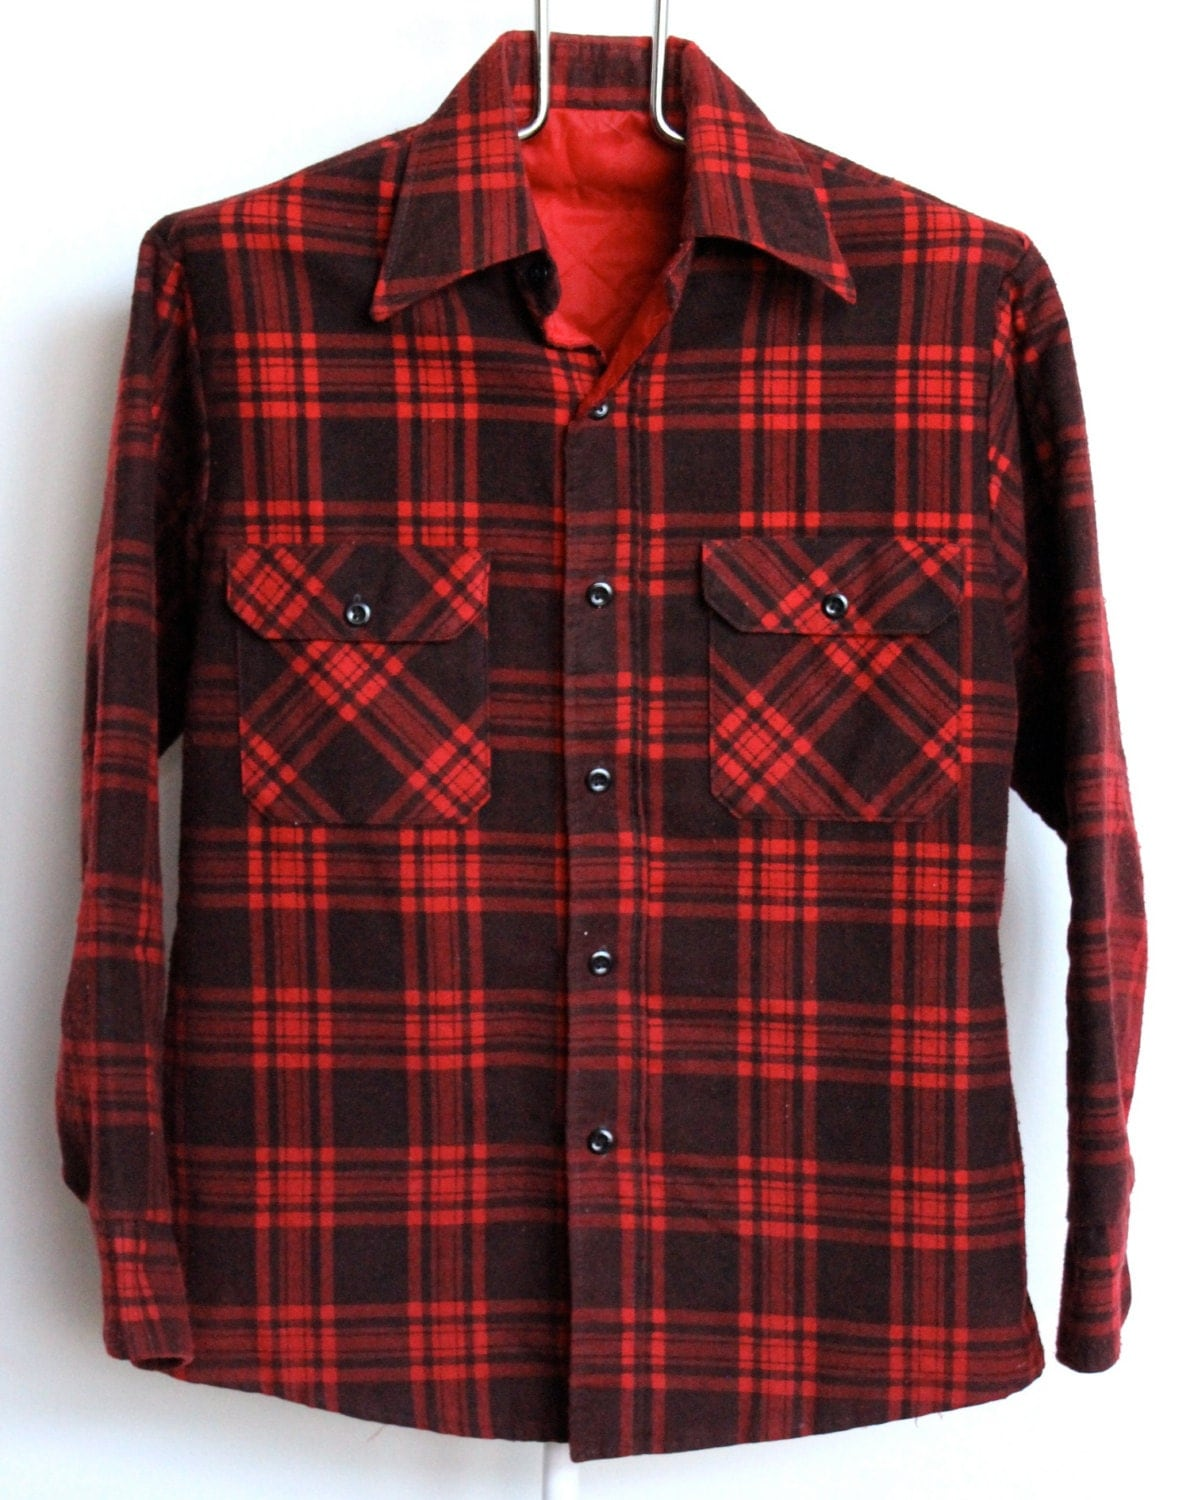 Find the best Fleece-Lined Flannel Plaid Hoodie at autoebookj1.ga Our high quality Women's Shirts and Tops are thoughtfully designed and built to last season after season. and comfortably doubles as a light jacket. Lined to the collar and cuffs with the same plush fleece as our Men's shirt. Front pocket.